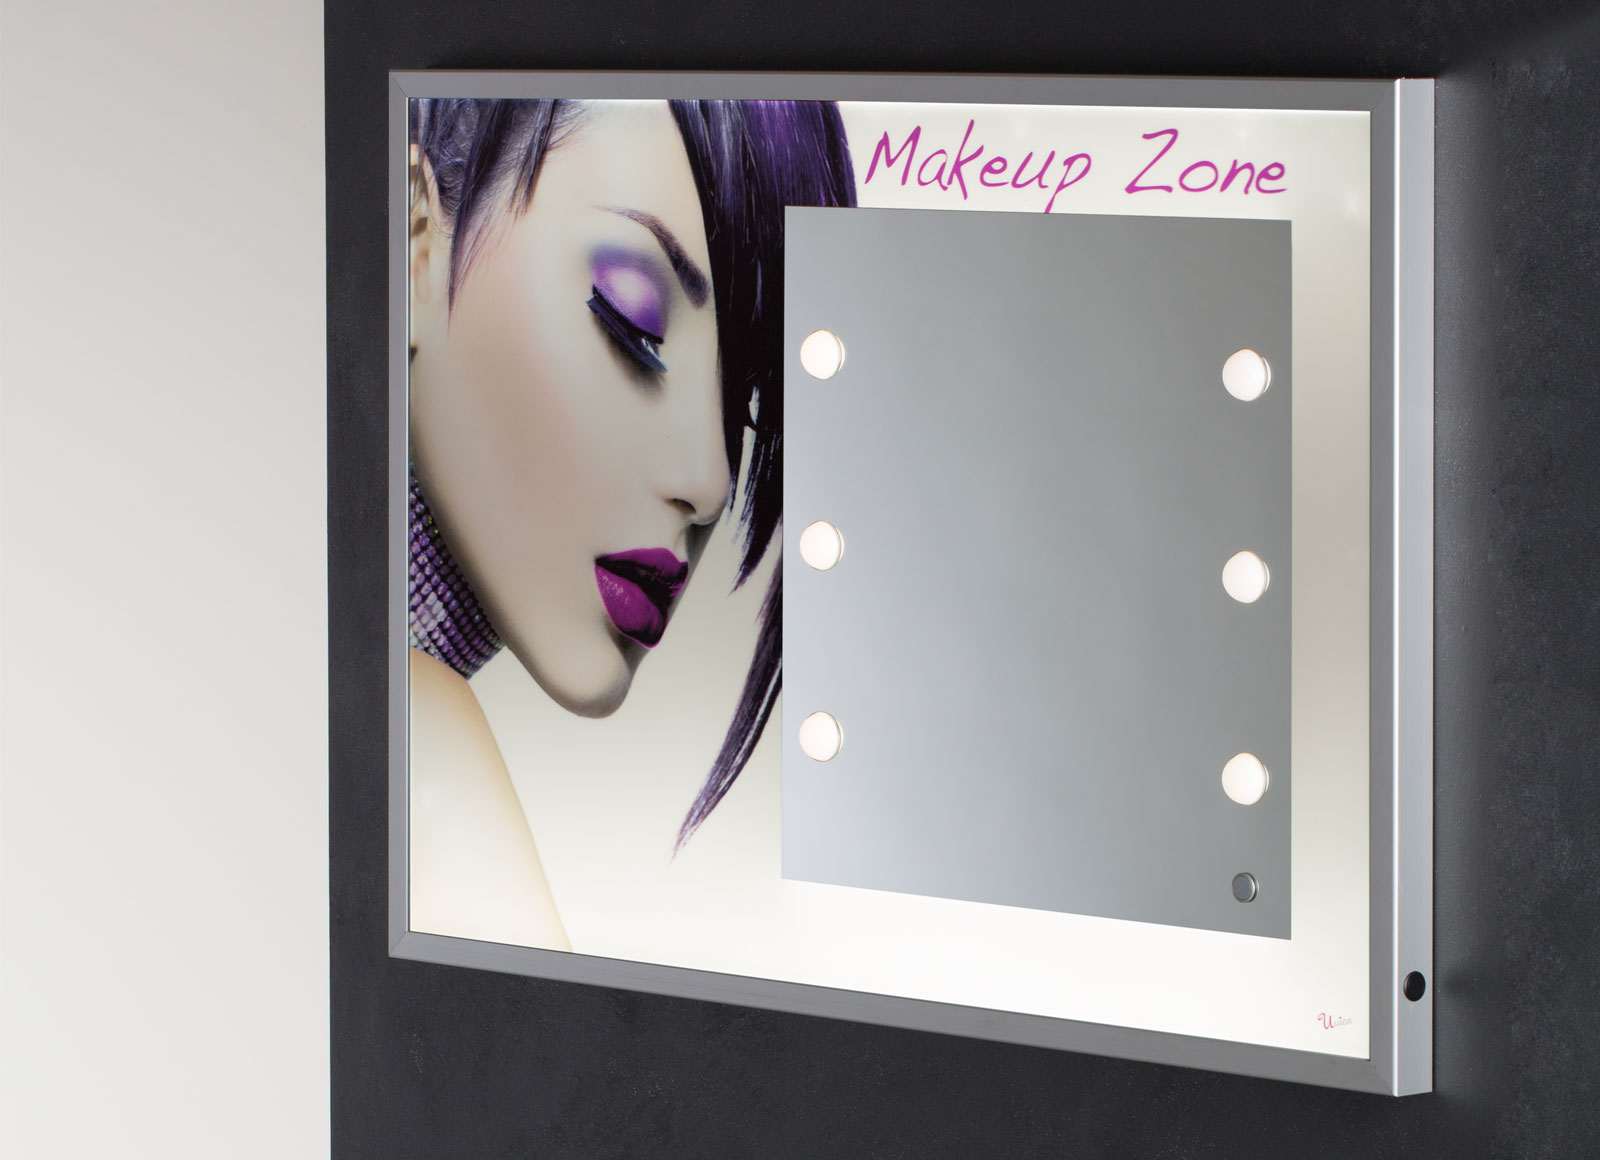 MPH backlit LED panel with I-light mirror